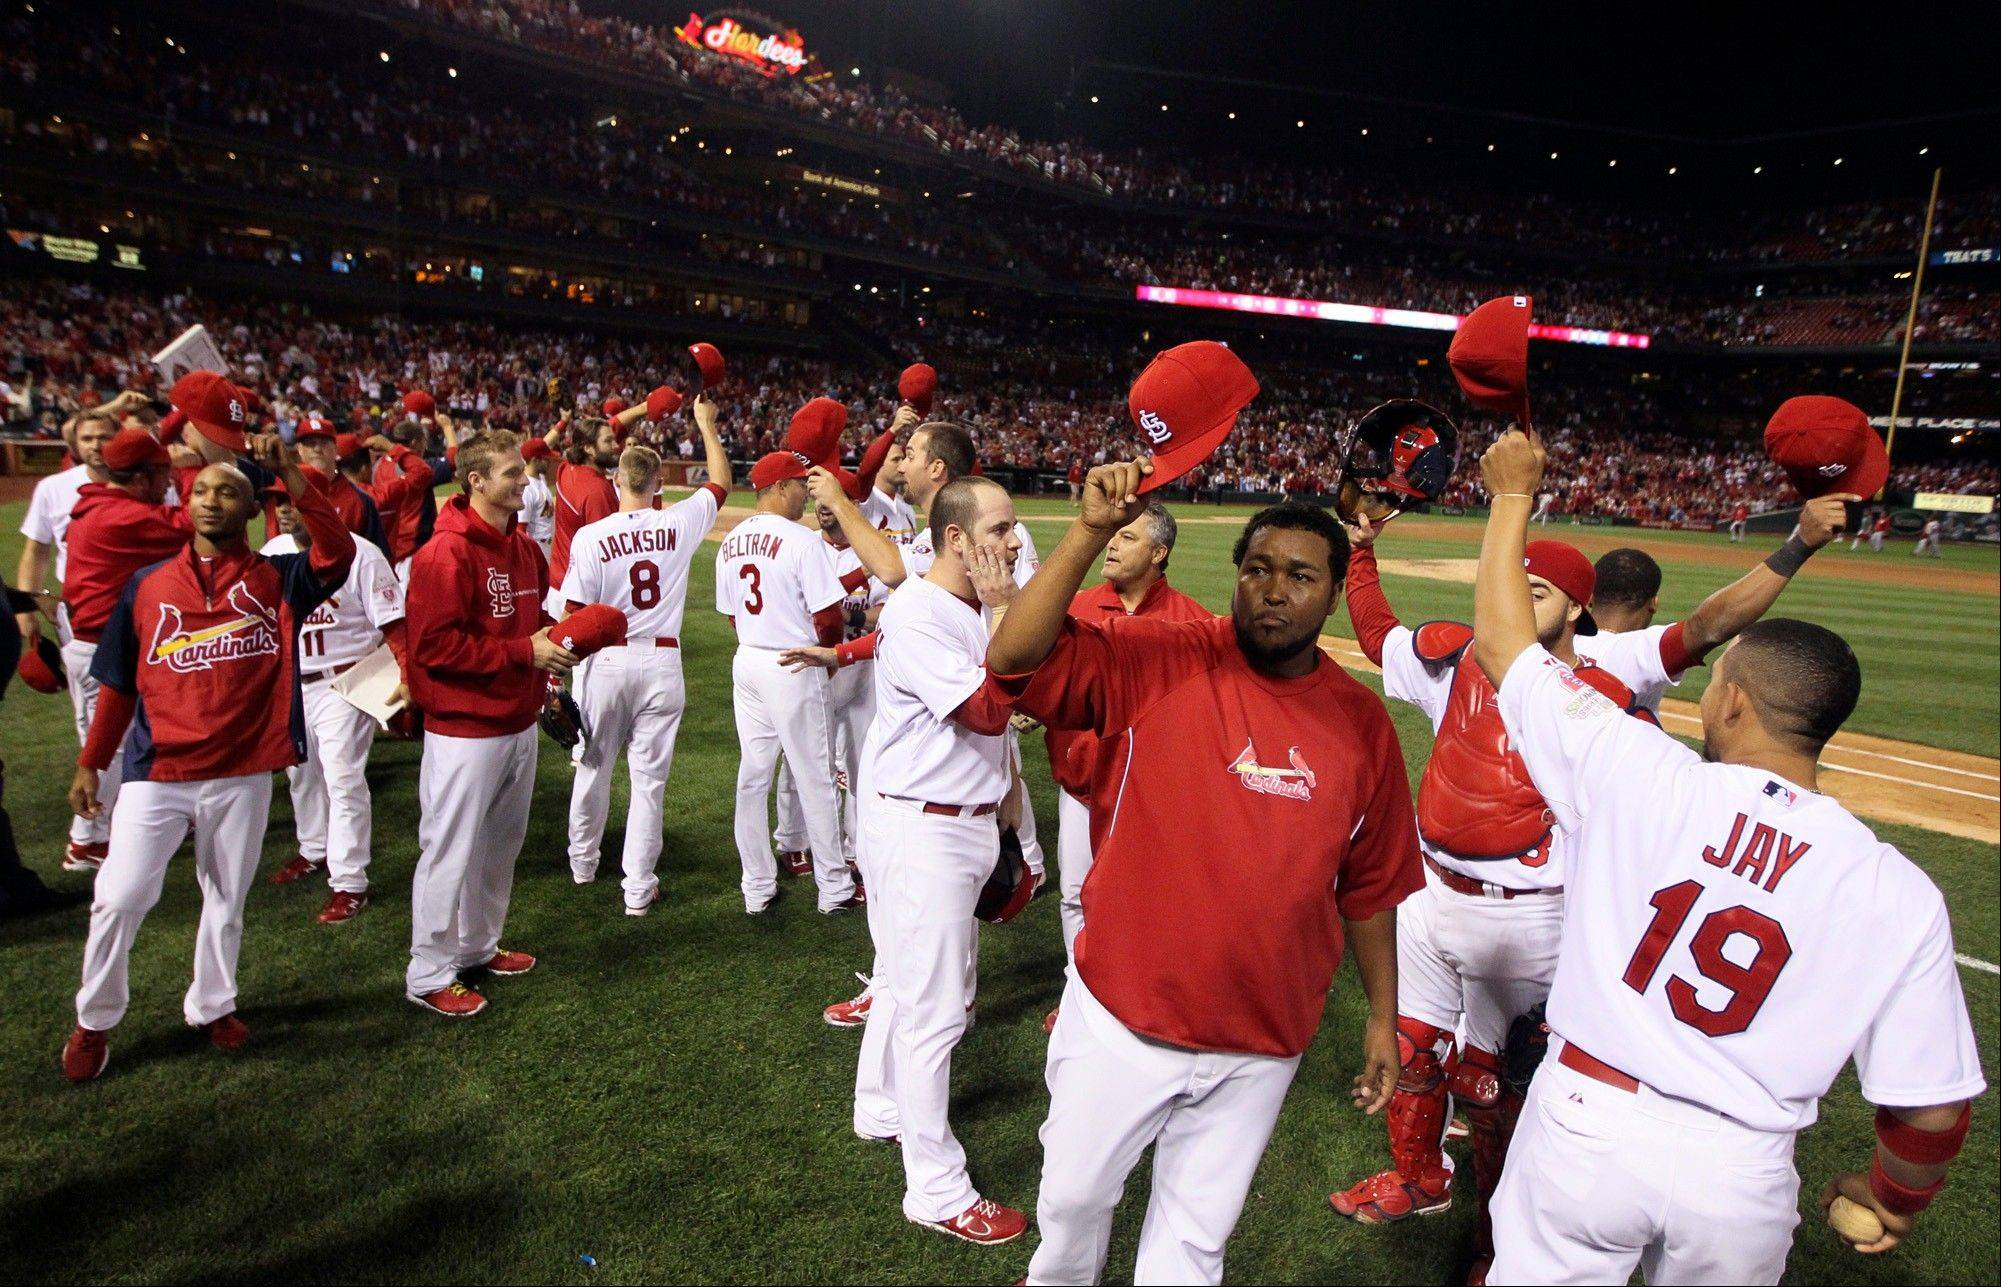 St. Louis Cardinals players wave their caps to acknowledge the fans after their win over the Cincinnati Reds on Wednesday at home.